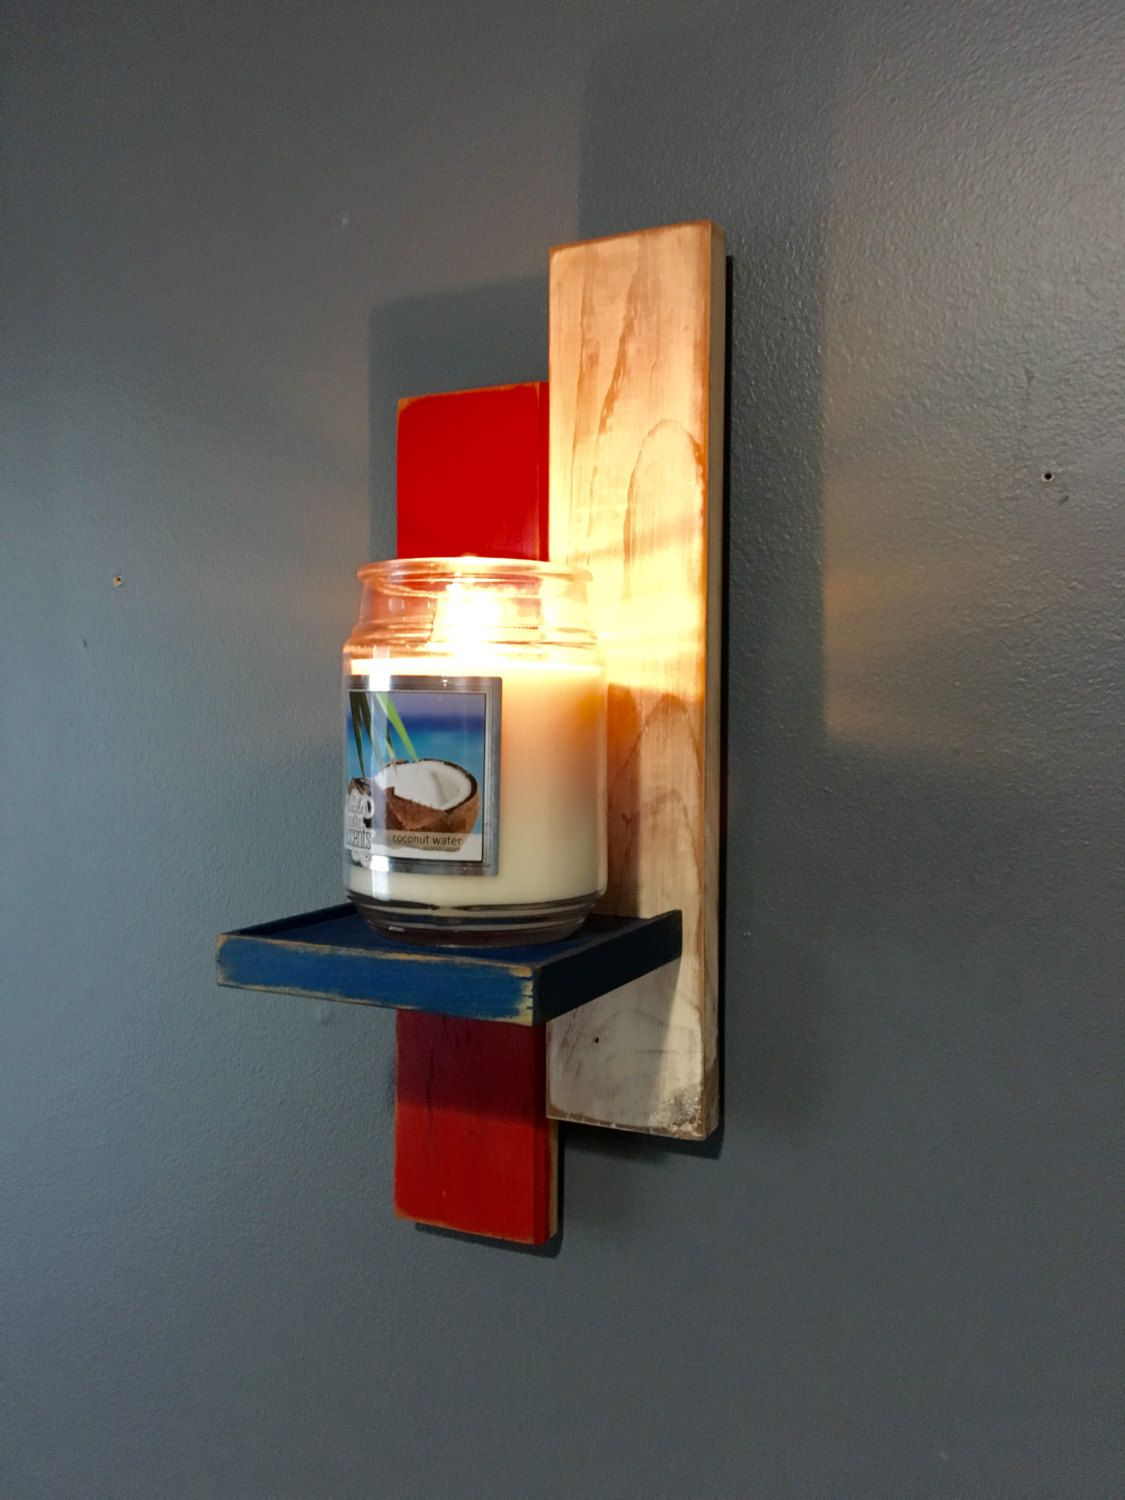 Yankee Candle Holder Reclaimed Wood Red White And Blue Rustic Style Wall Decor American Flag Sconce By Lumberlovin On Etsy